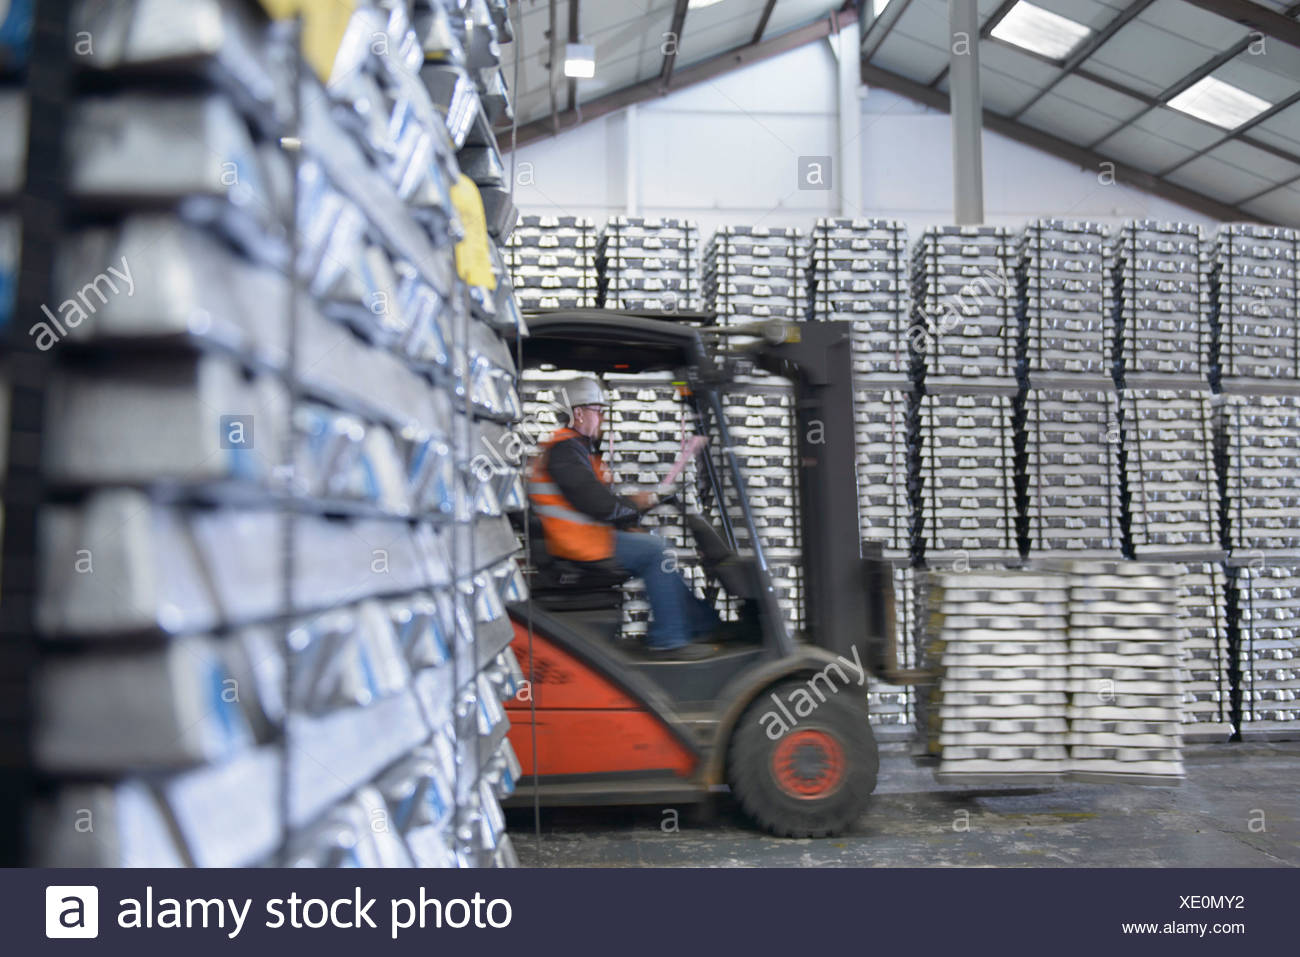 Forklift truck moving stock in warehouse - Stock Image